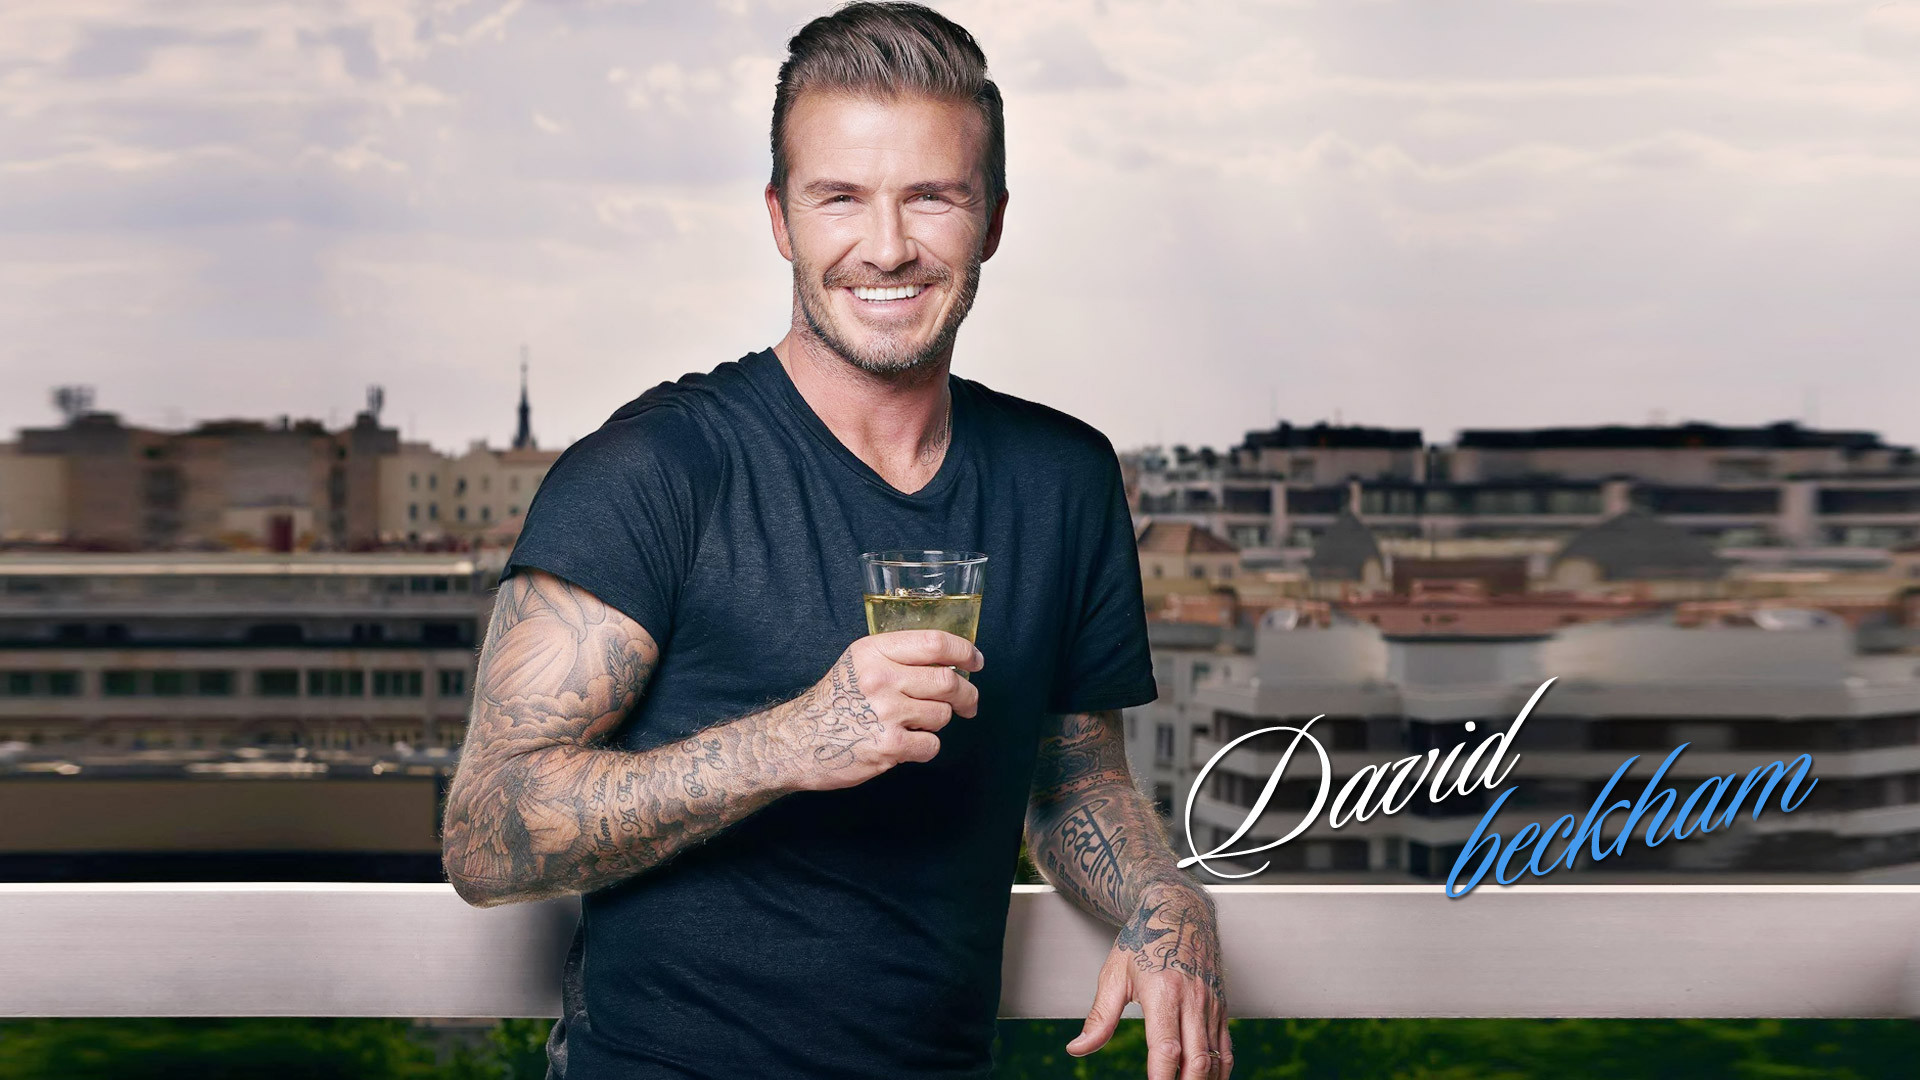 Res: 1920x1080, Celebrity David Beckham 1080p Size Large HD Wallpapers